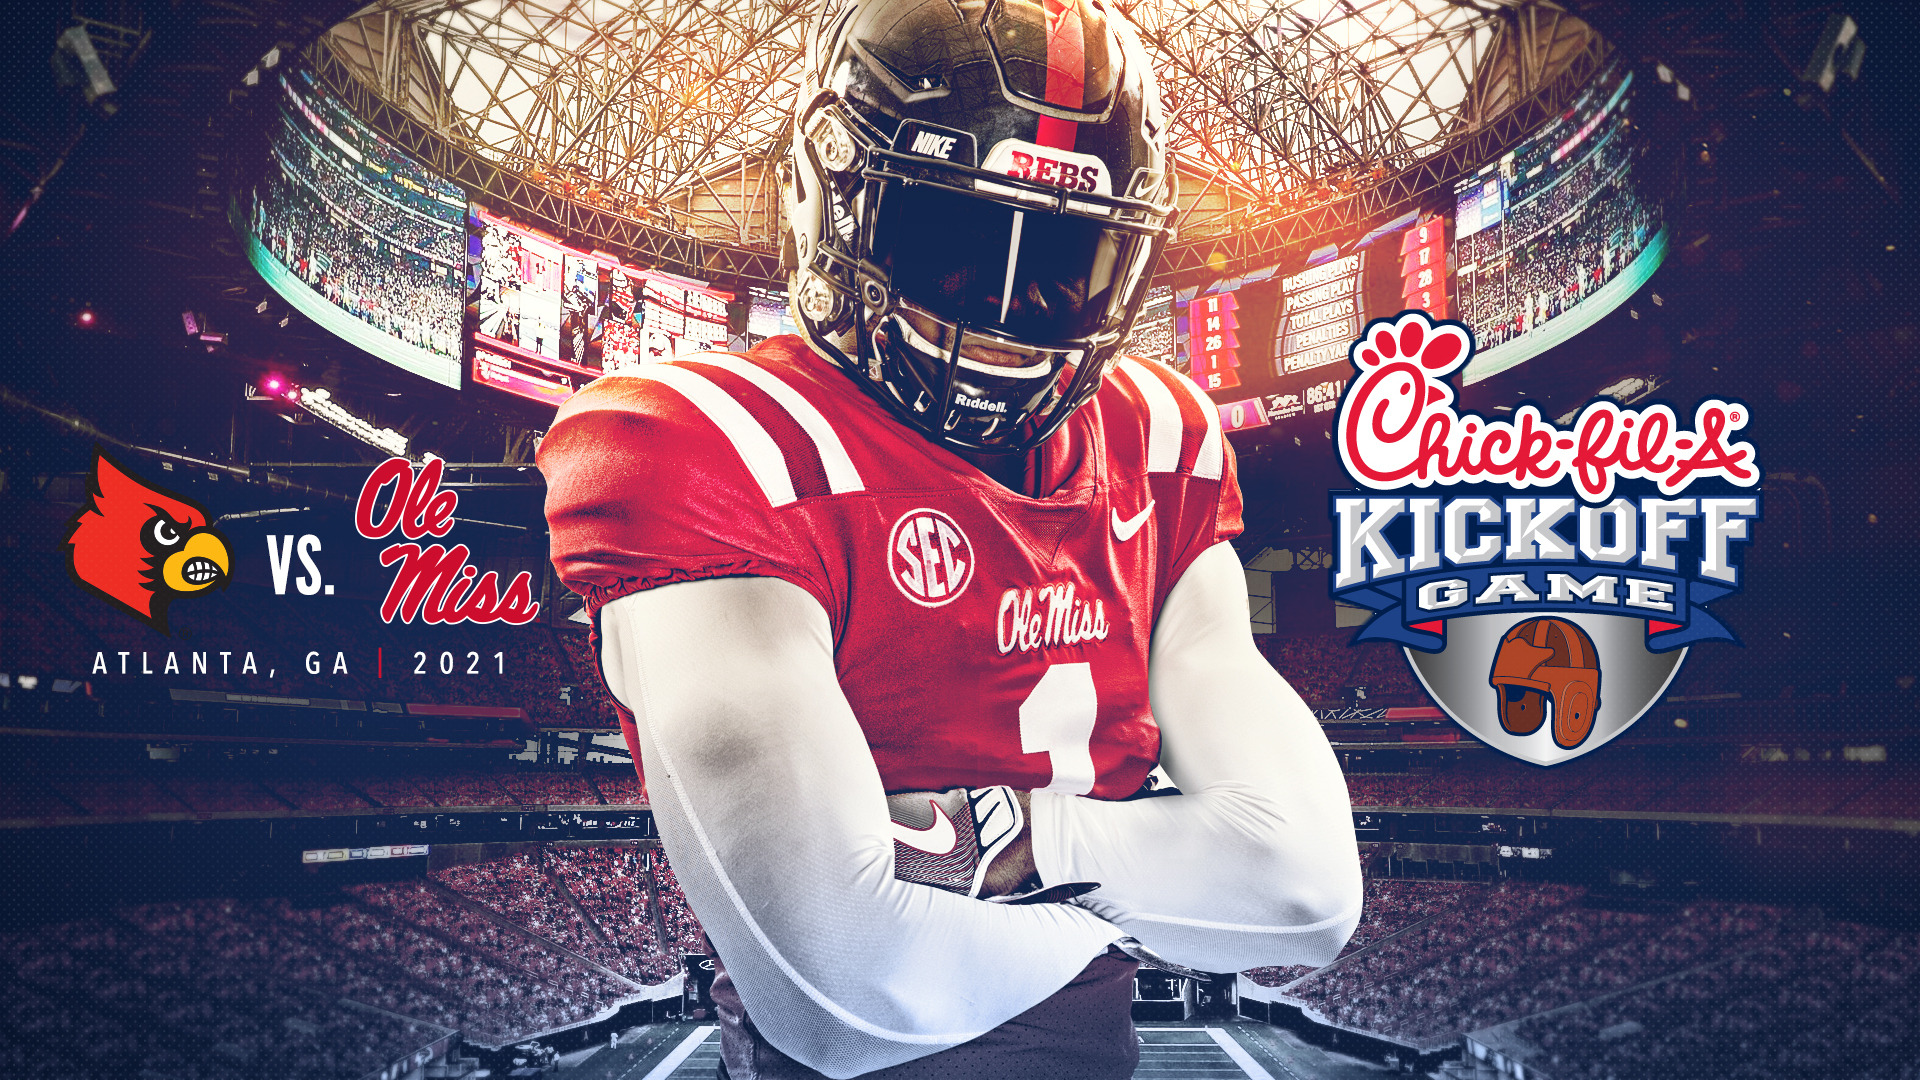 Ole Miss Football Schedule 2020.Ole Miss To Face Louisville In 2021 Chick Fil A Kickoff Game